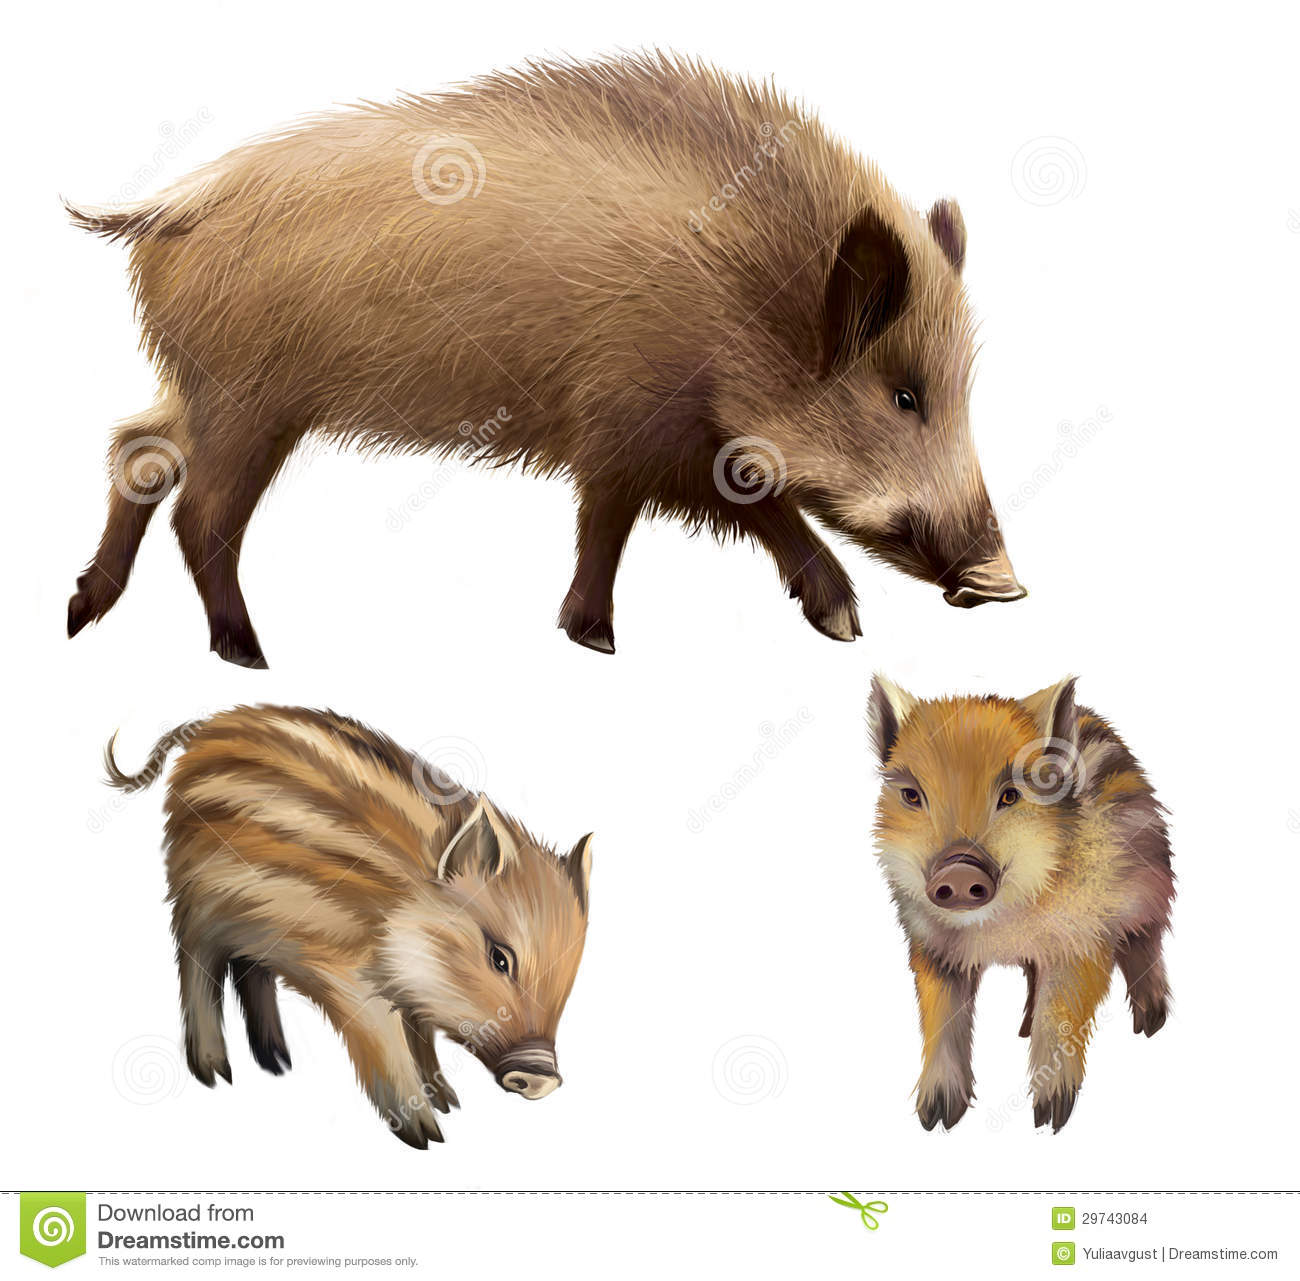 Boar familly, two little piglets and mother pig. Isolated realistic illustration on white background